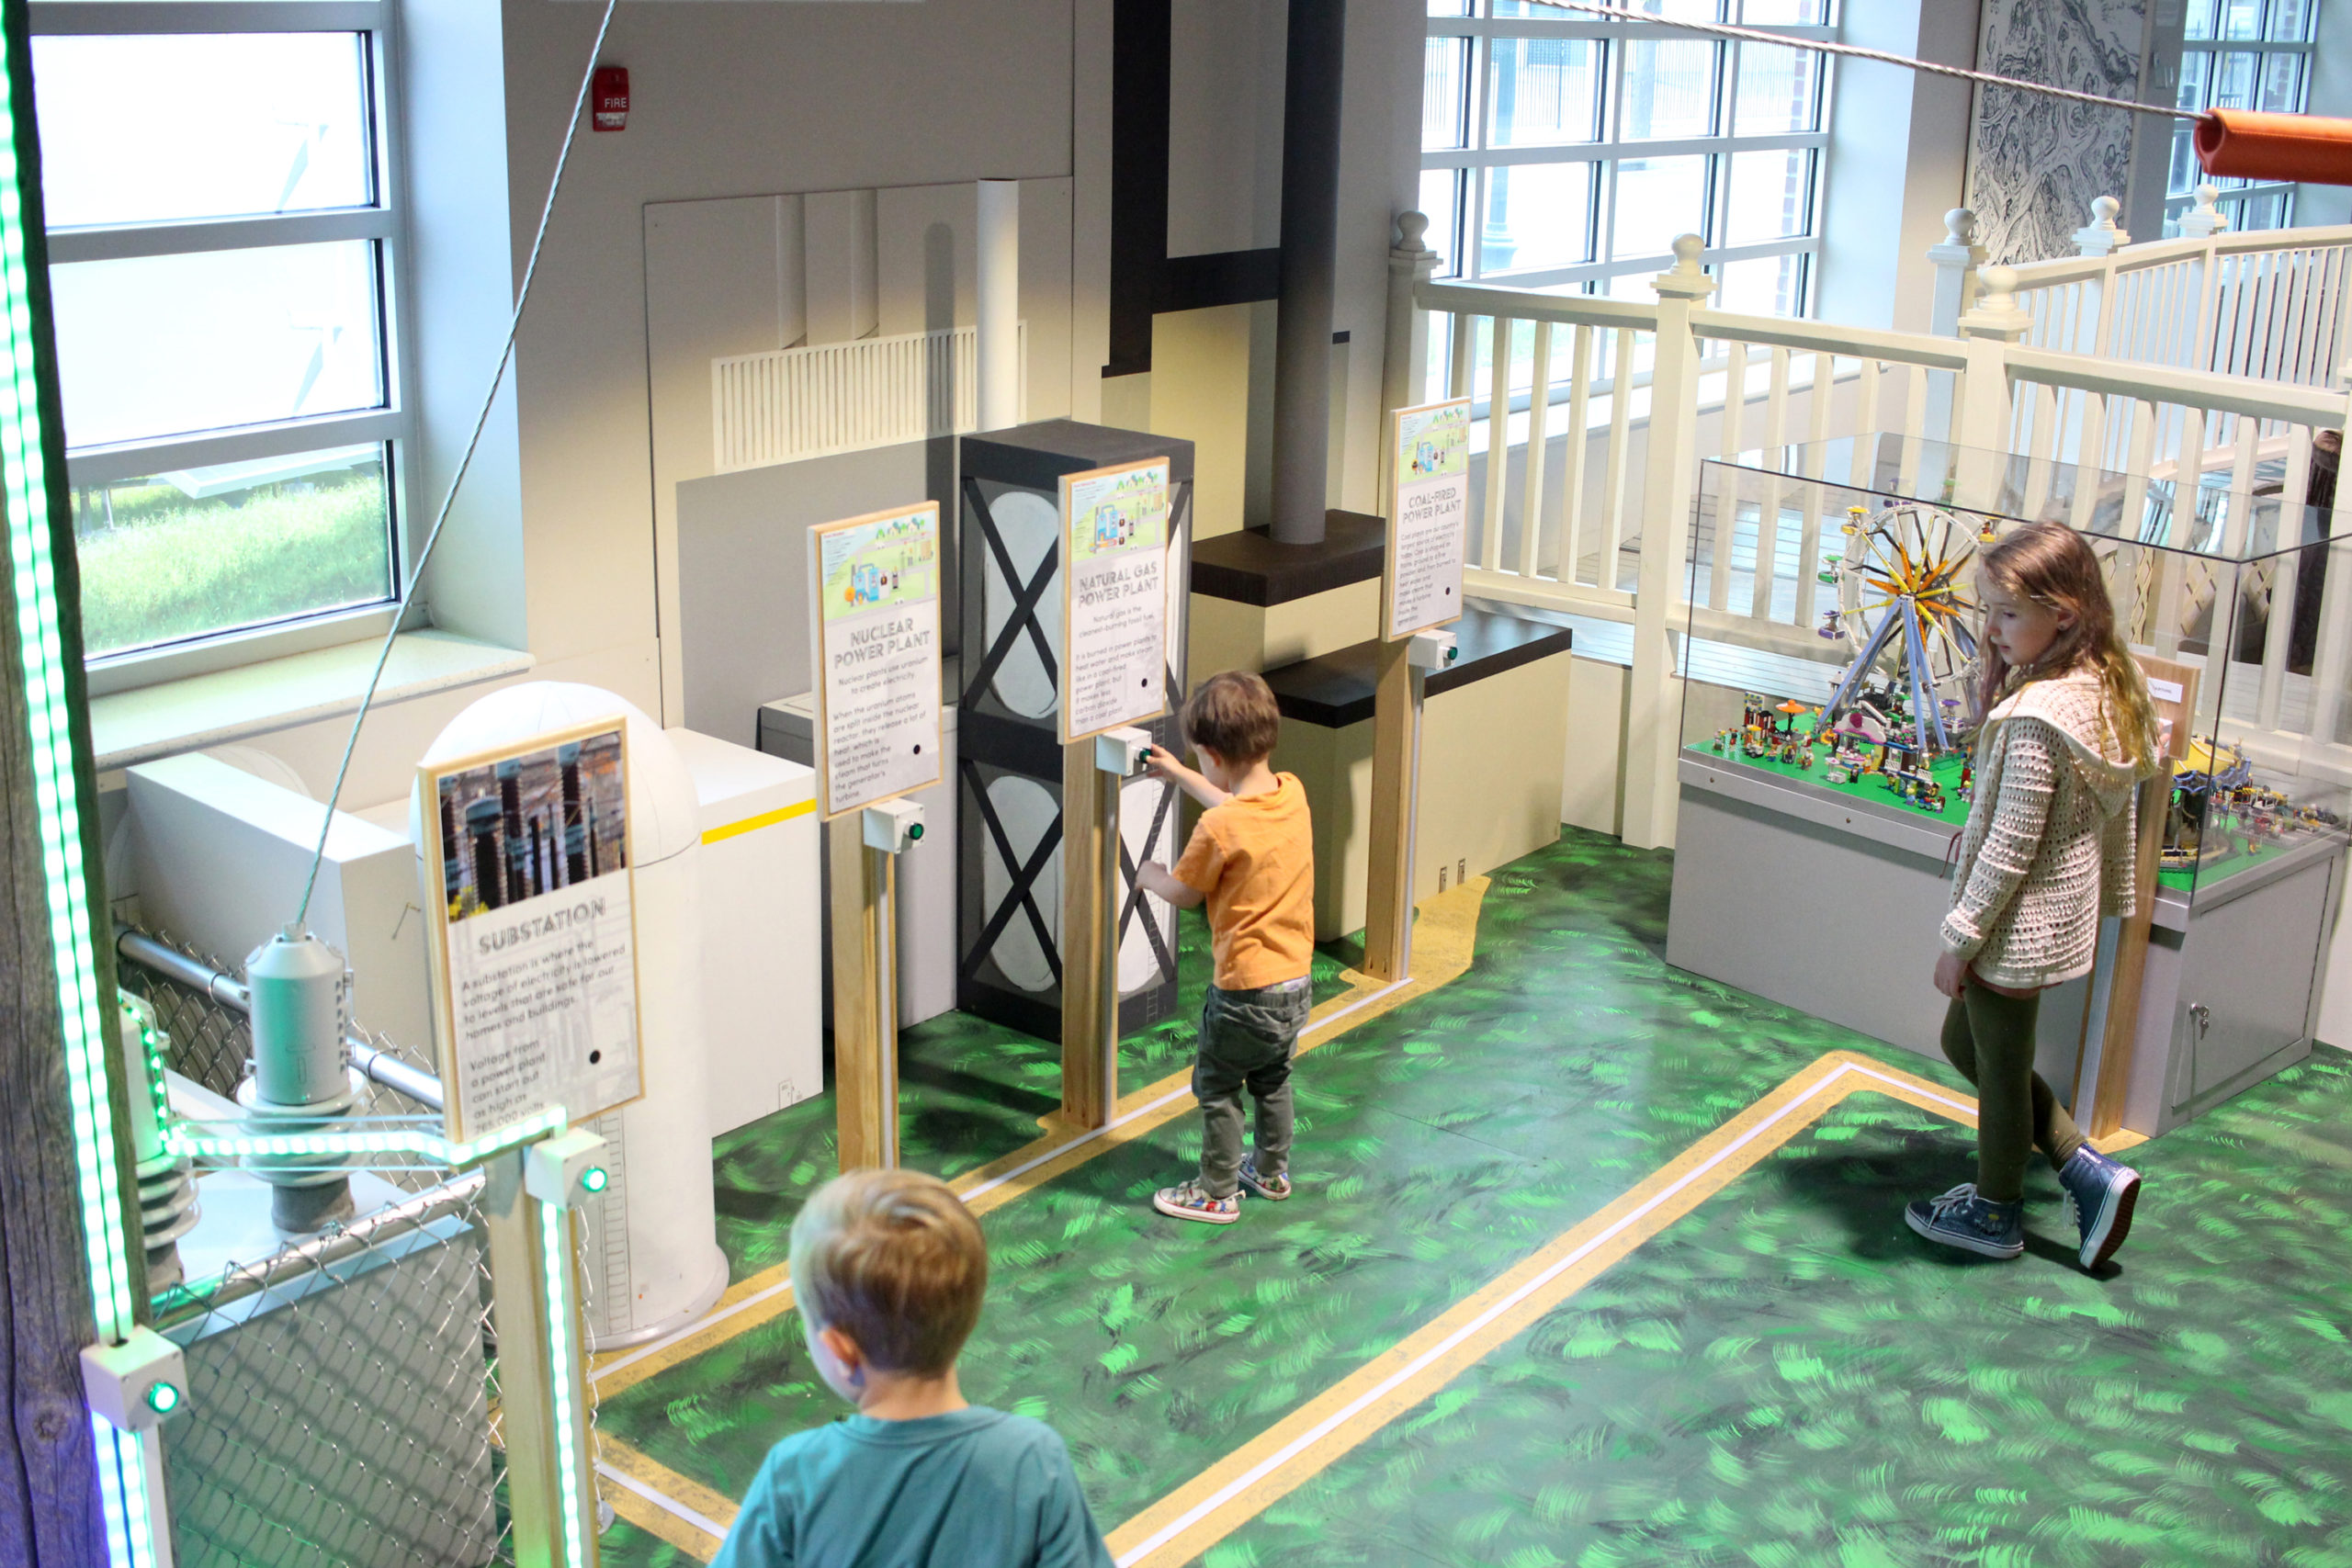 The Grid electricity learning experience in the Energy Powered by Play seasonal temporary exhibit at the Childrens Museum of Southern Minnesota in Mankato